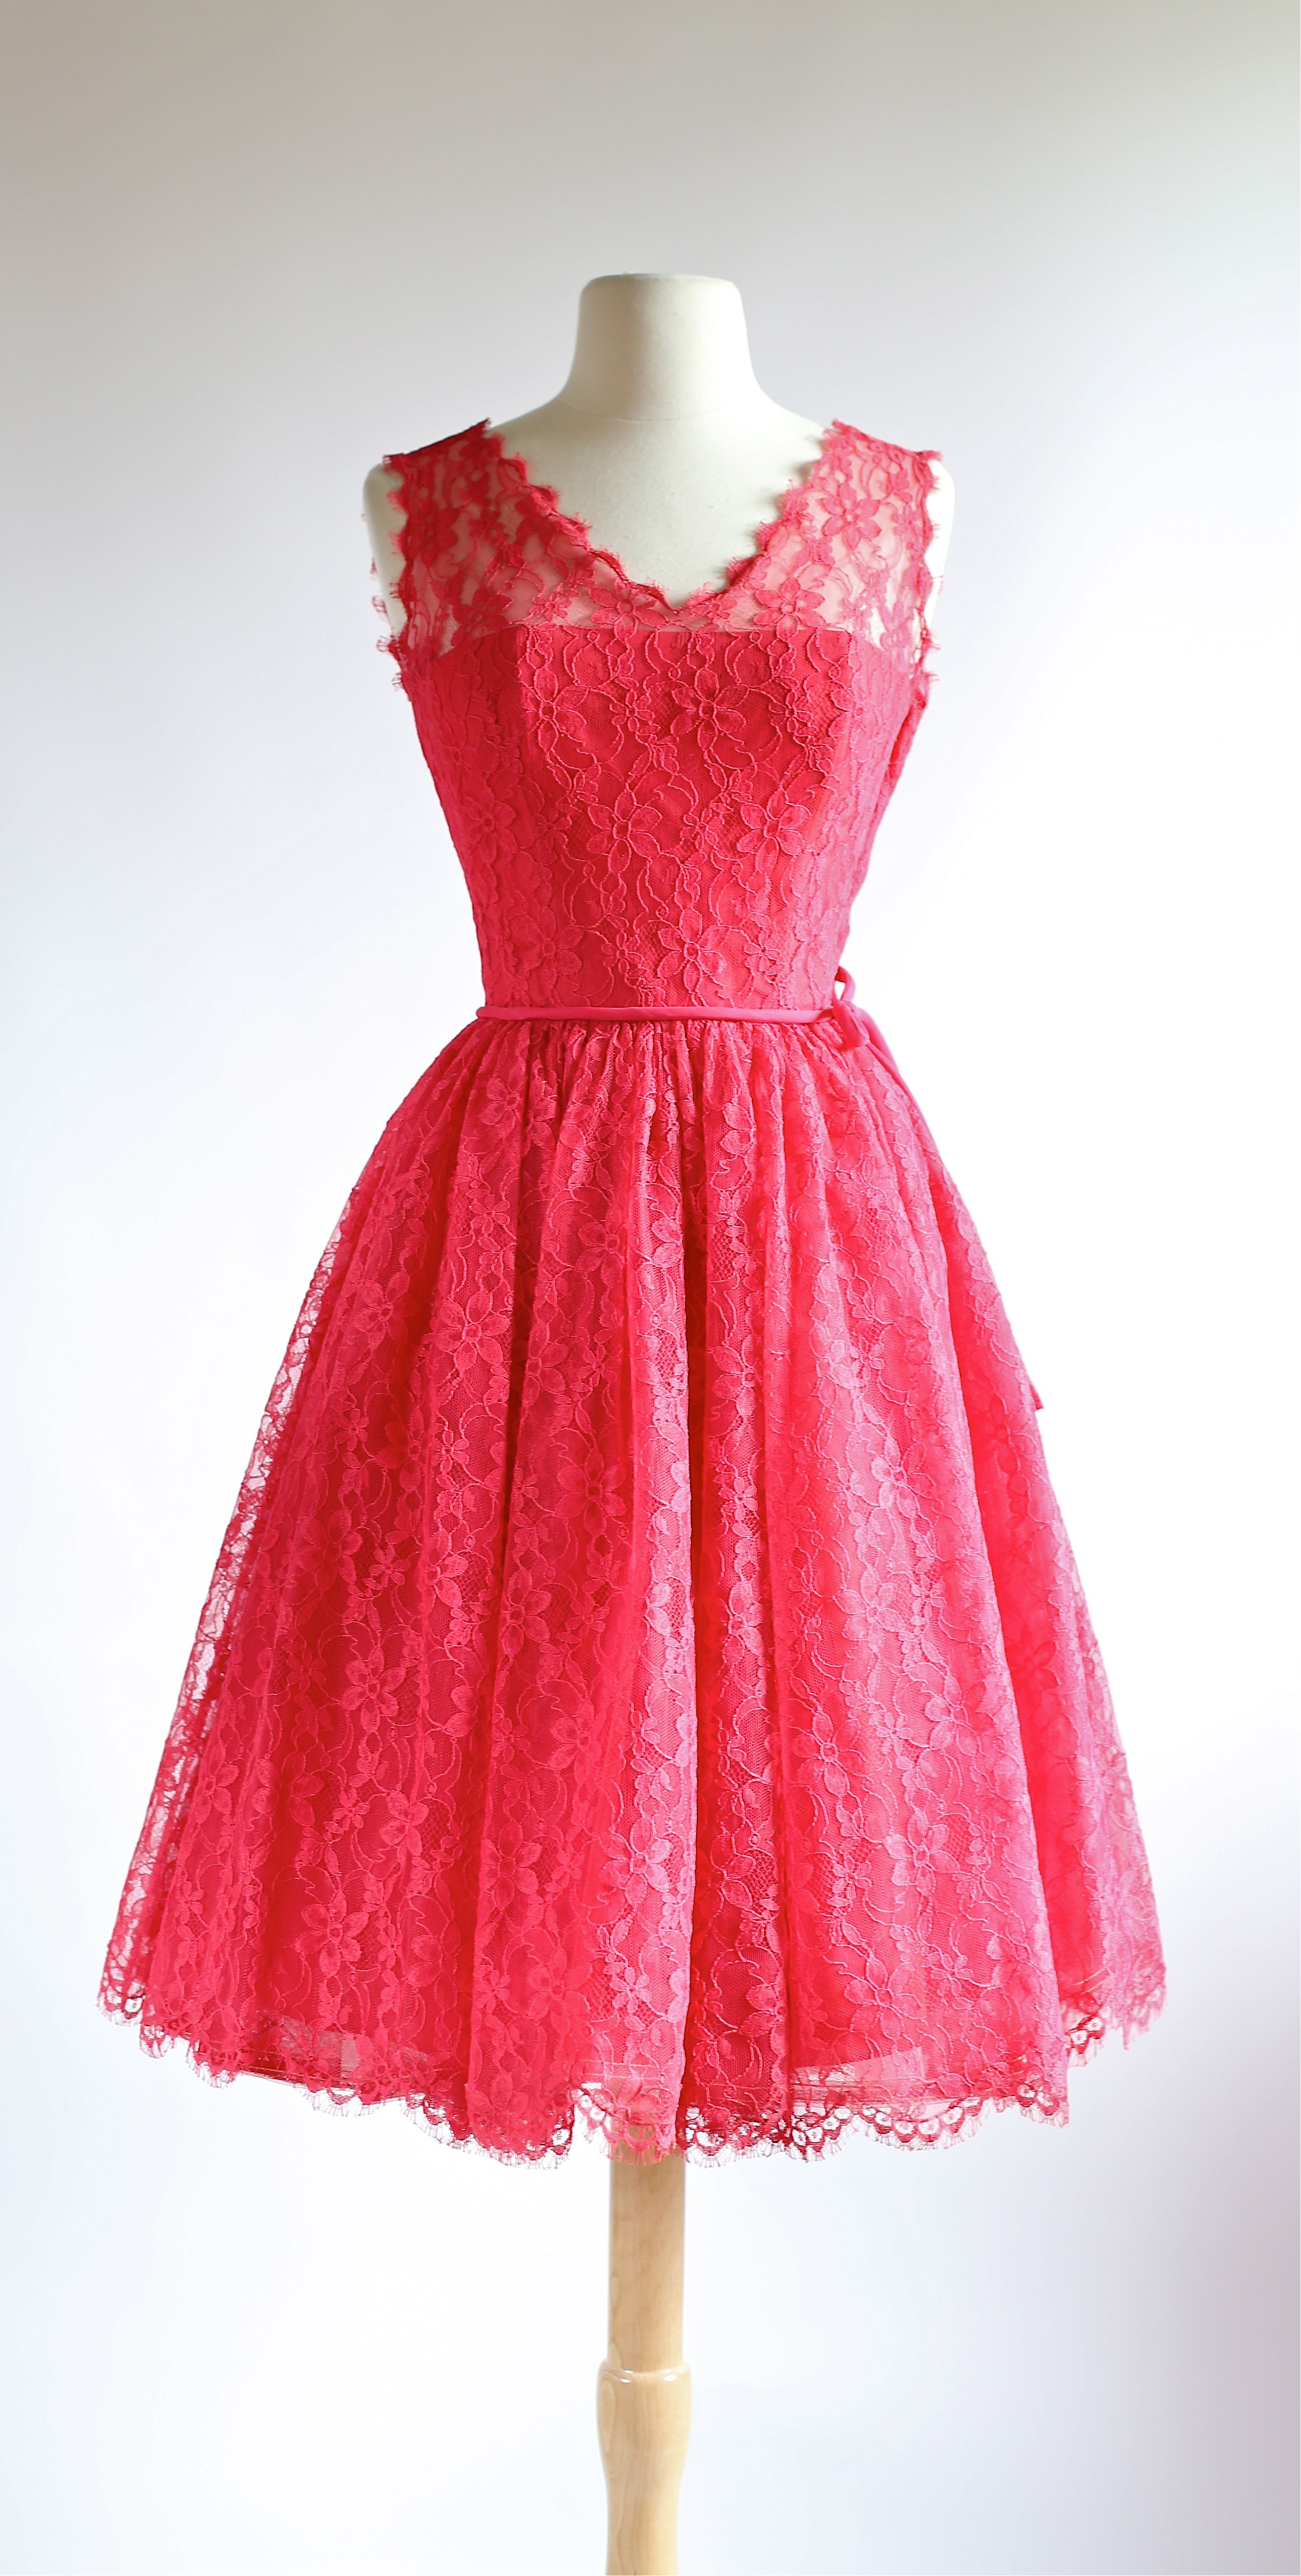 Stunning 1950 S Watermelon Lace Cocktail Dress Available At Xtabay Dresses Vintage Dresses Cocktail Dress Lace [ 5051 x 2551 Pixel ]